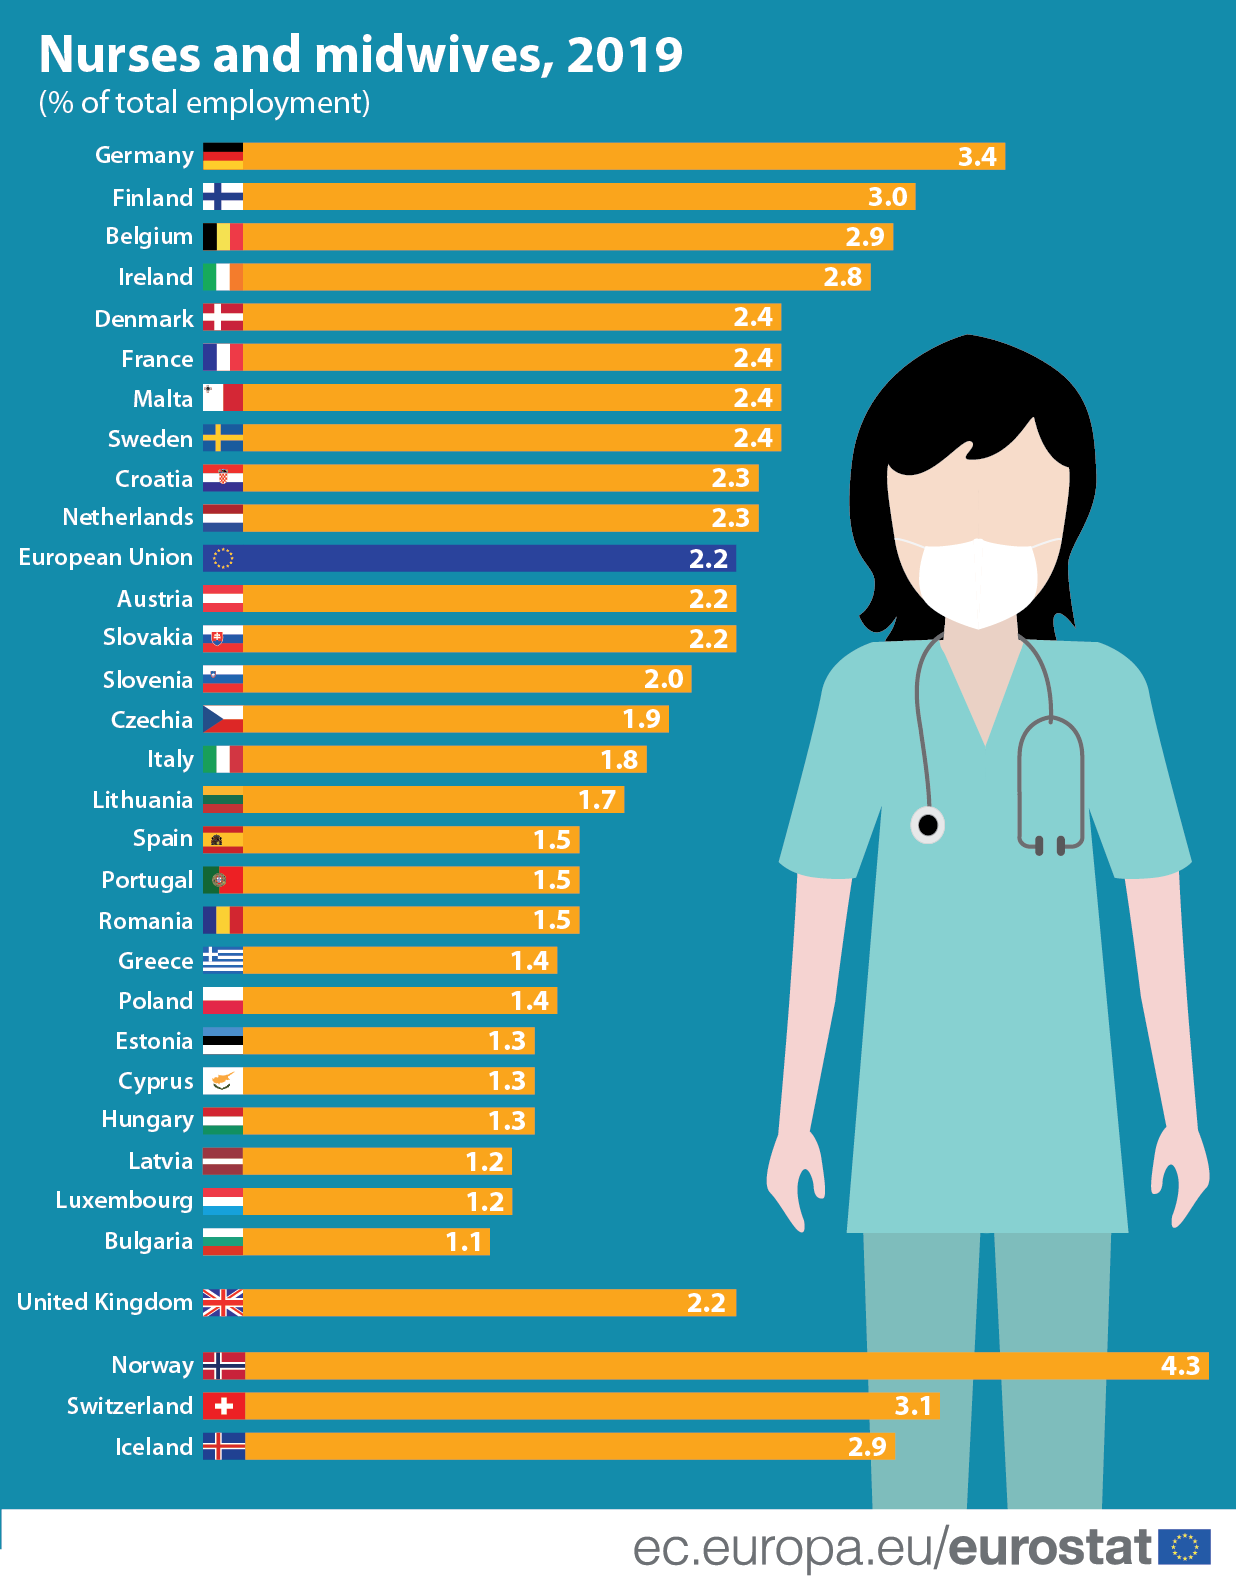 Infographic/bar chart: Nurses and midwives, per cent of total employment, 2019